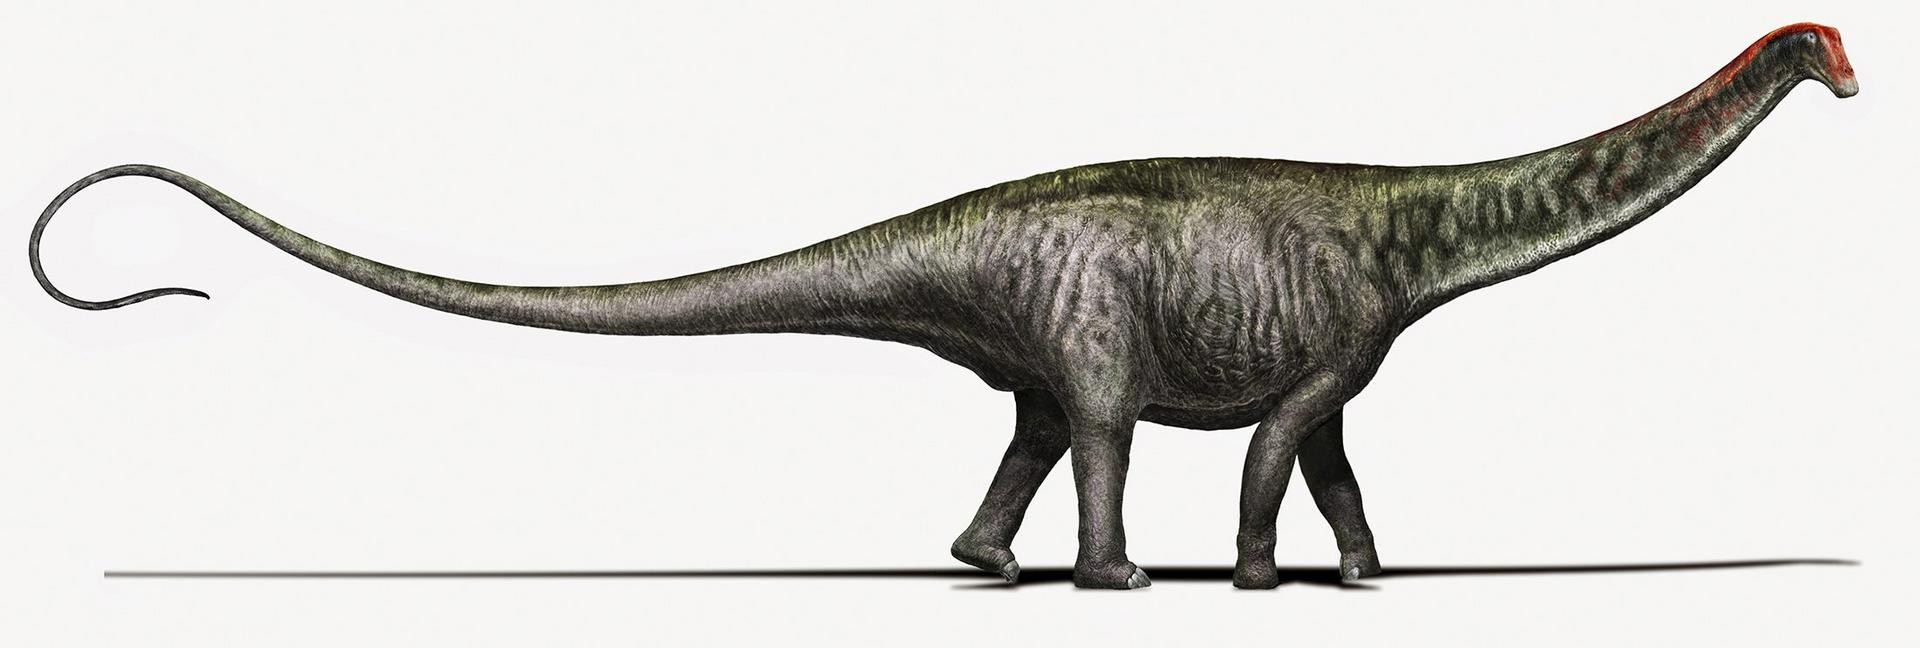 29f4e697f Brontosaurus is back: Beloved dinosaur deserves his old name, experts say |  South China Morning Post